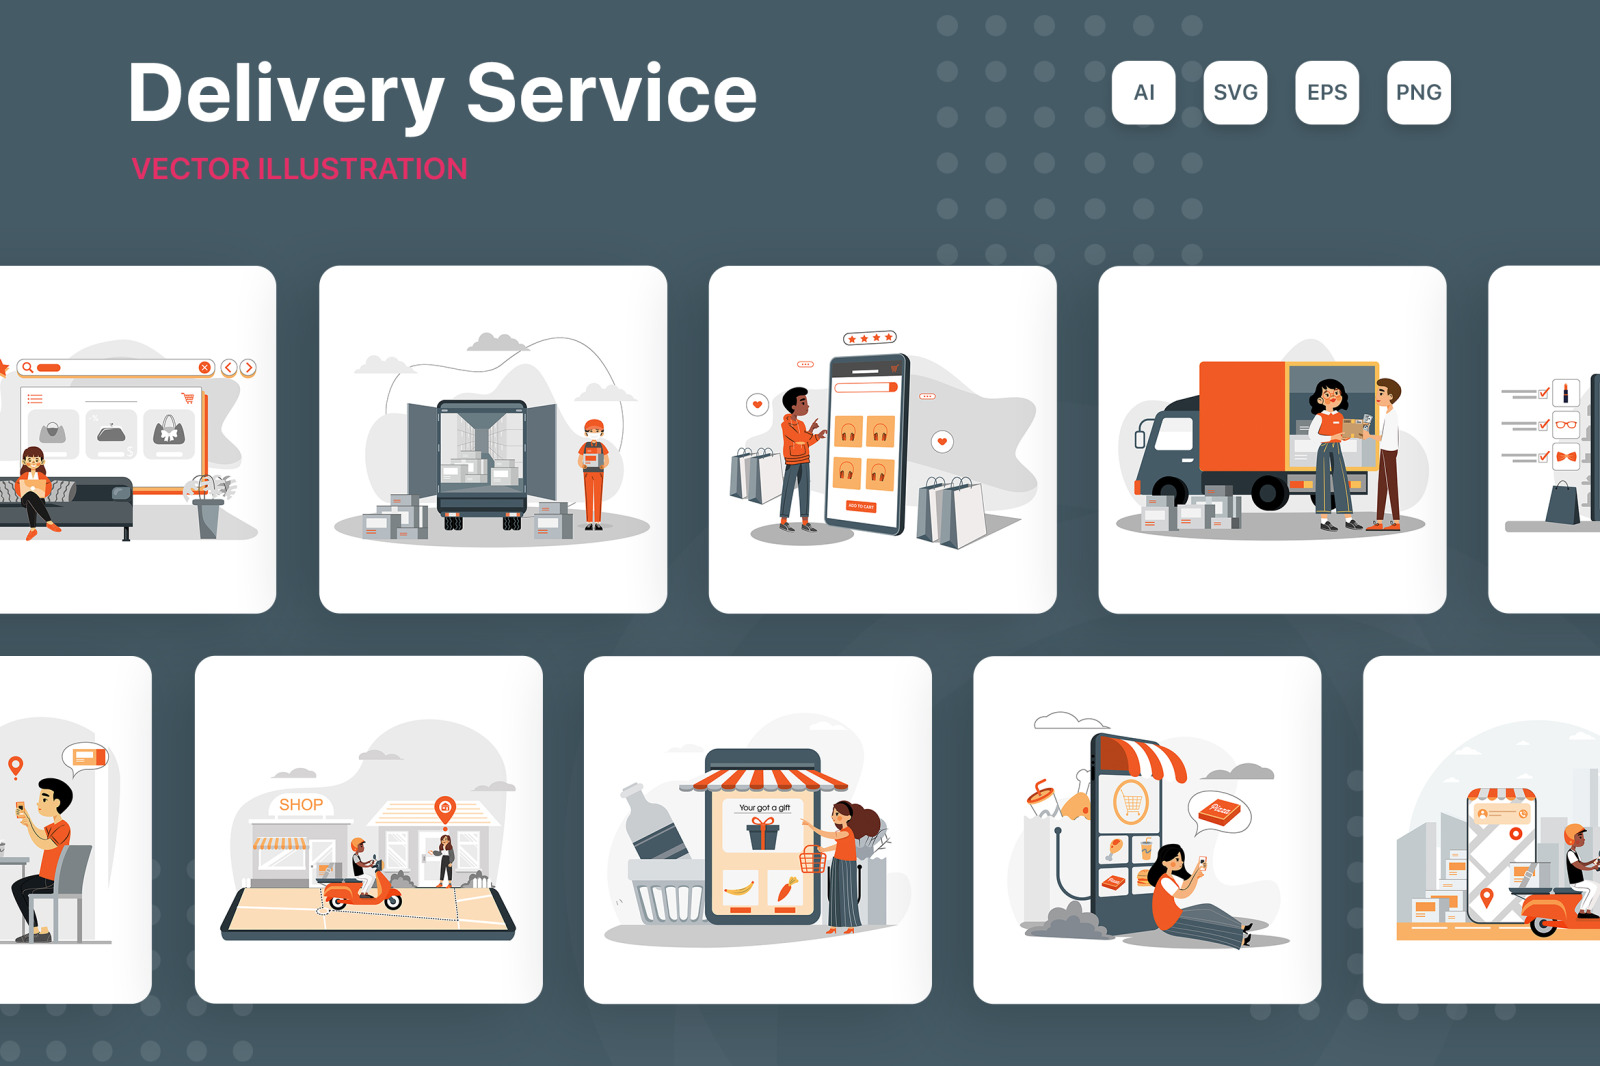 M233_Delivery Service Illustrations